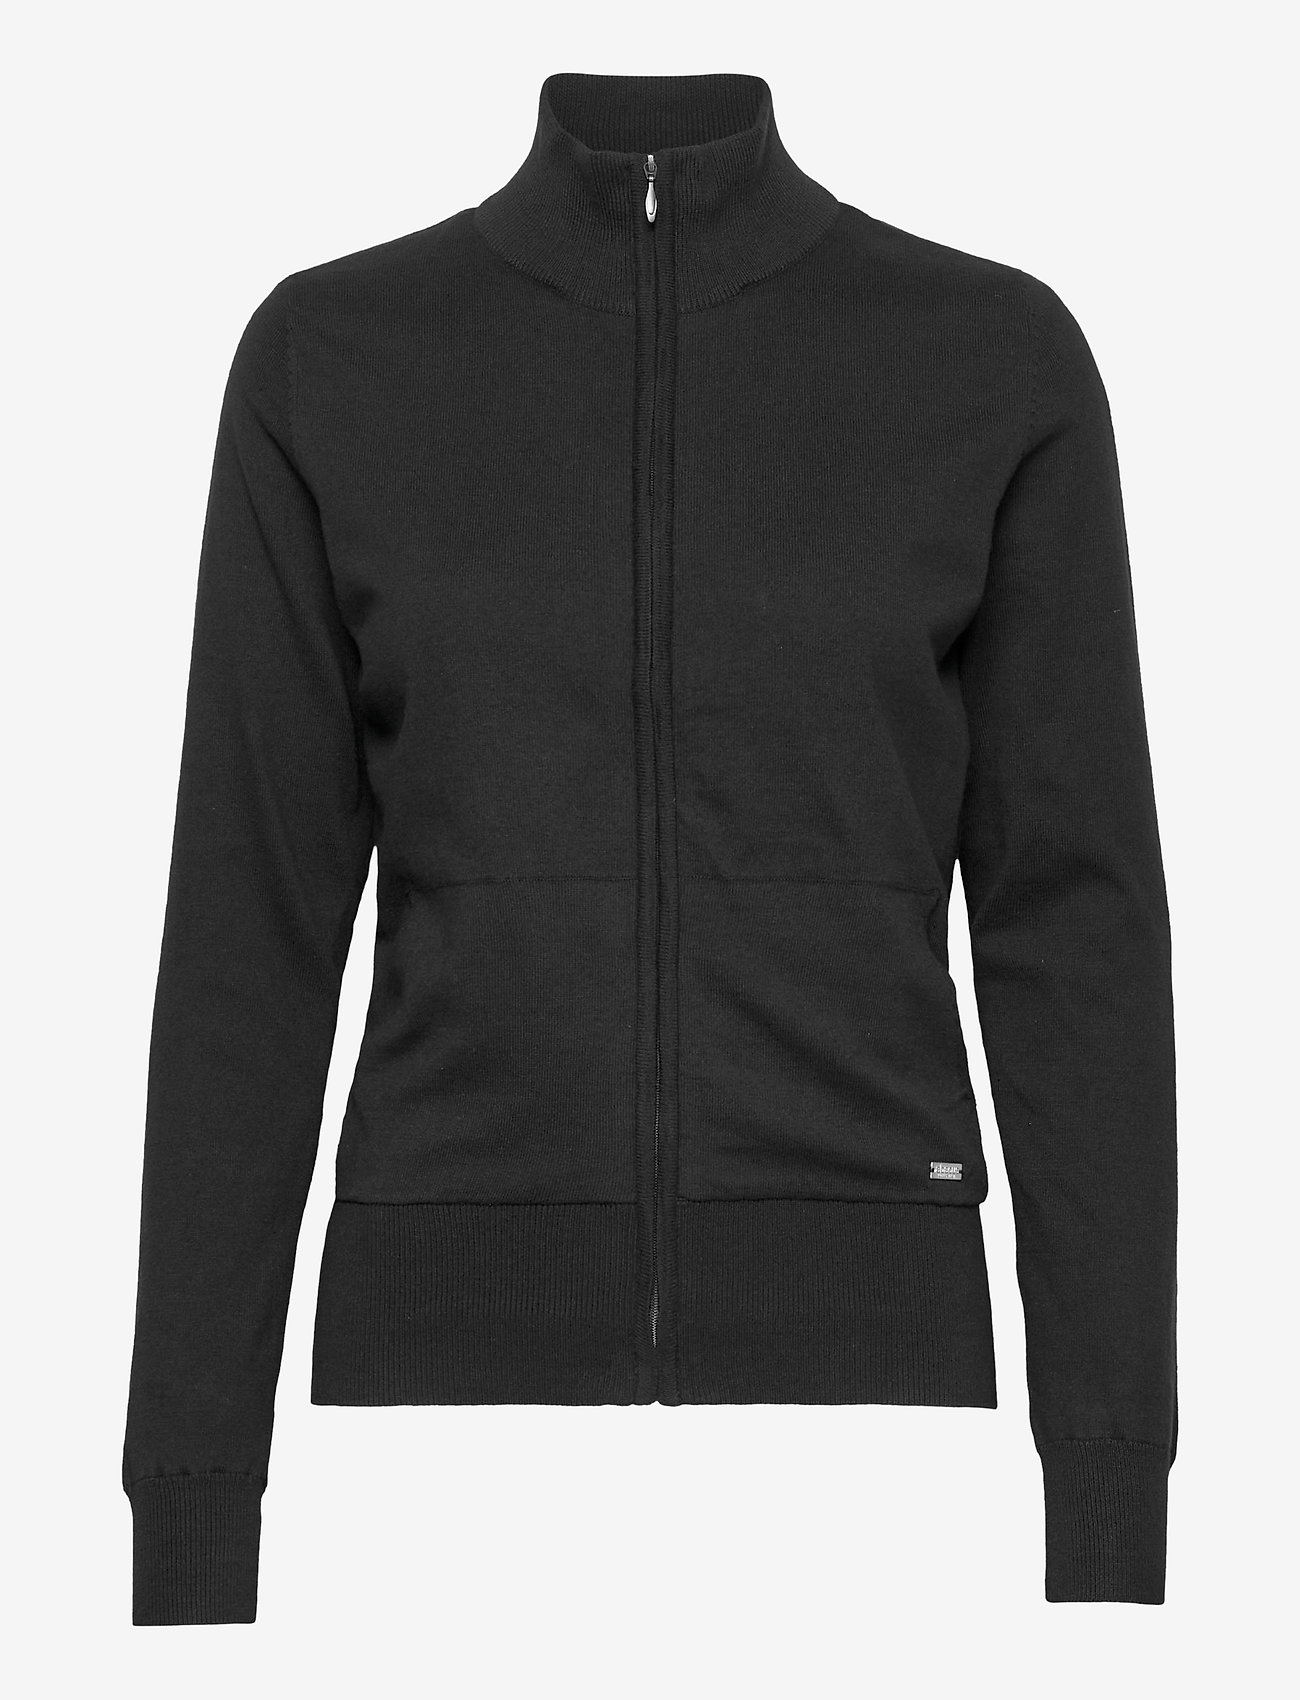 Abacus - Lds Dubson windstop cardigan - gebreid - black - 0